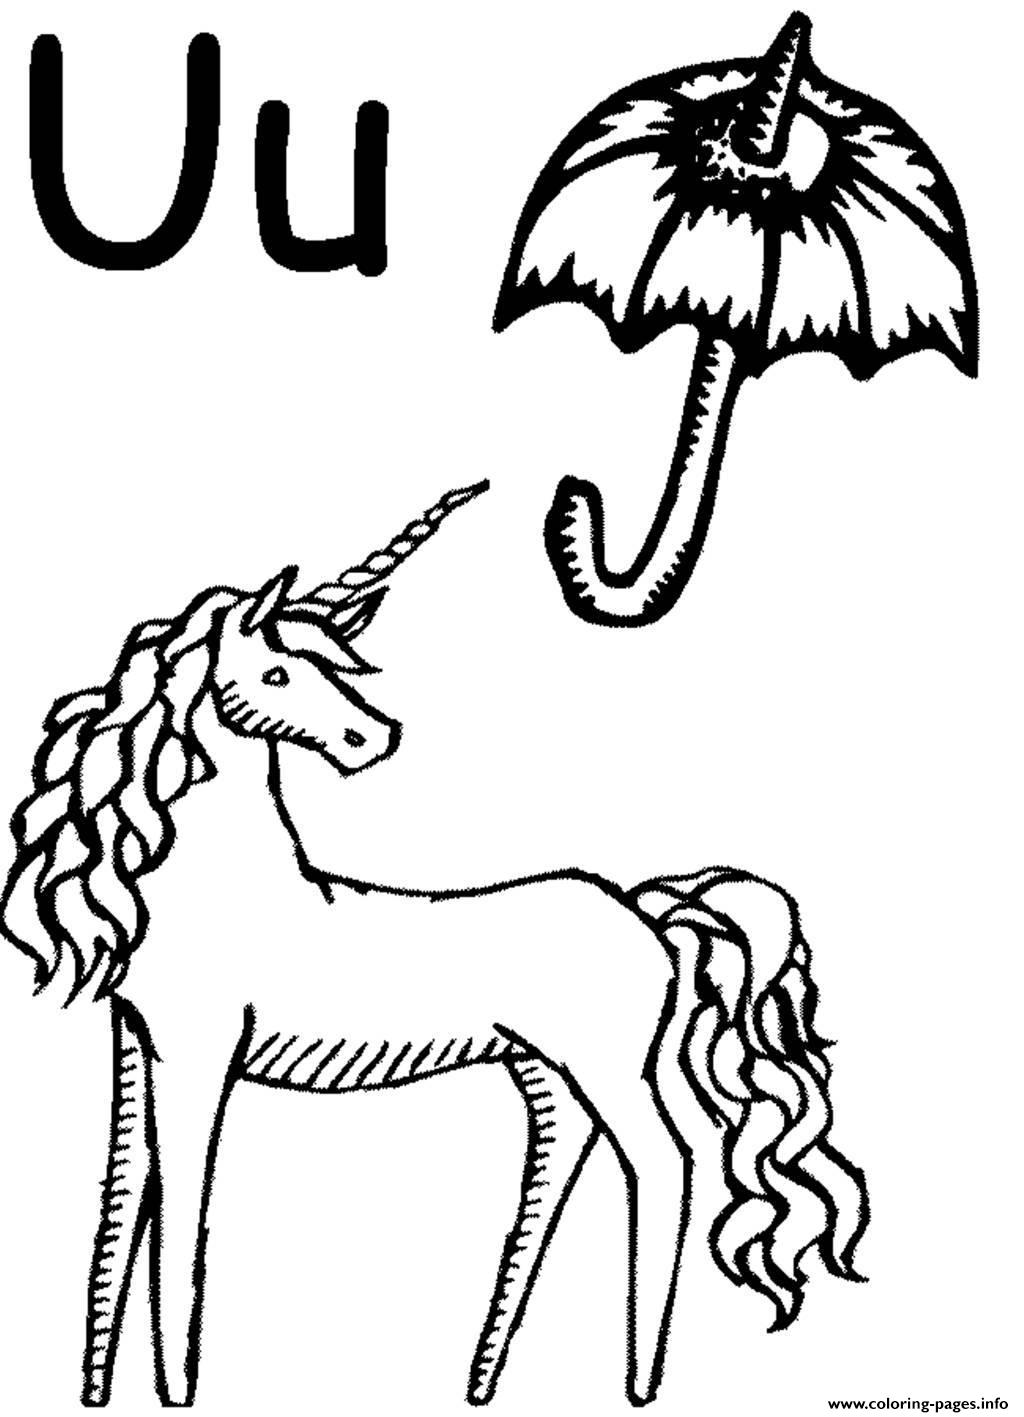 Unicorn And Umbrella Alphabet S